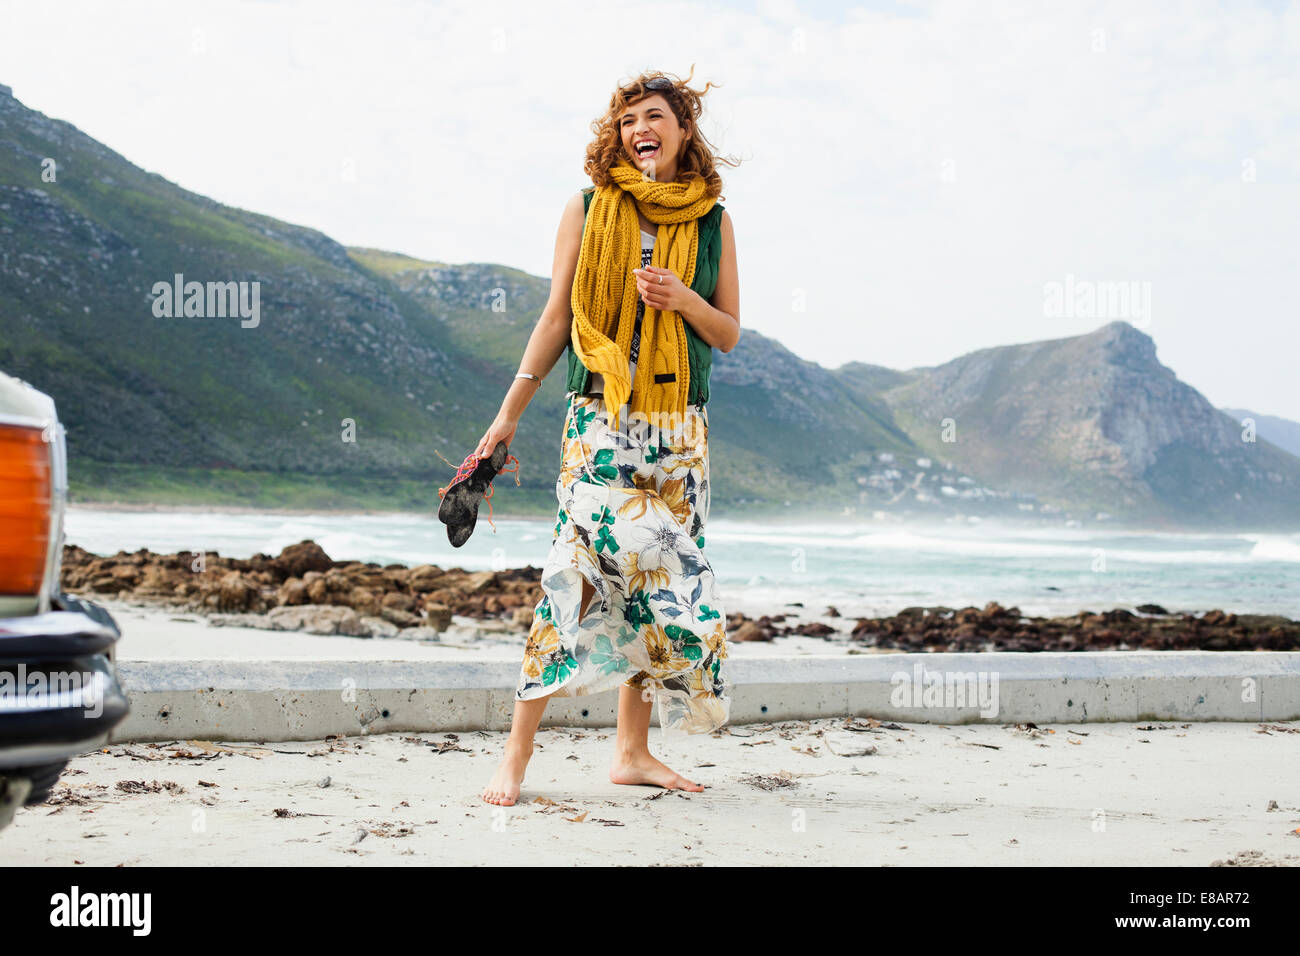 Young woman laughing on Beach, Cape Town, Western Cape, Afrique du Sud Photo Stock